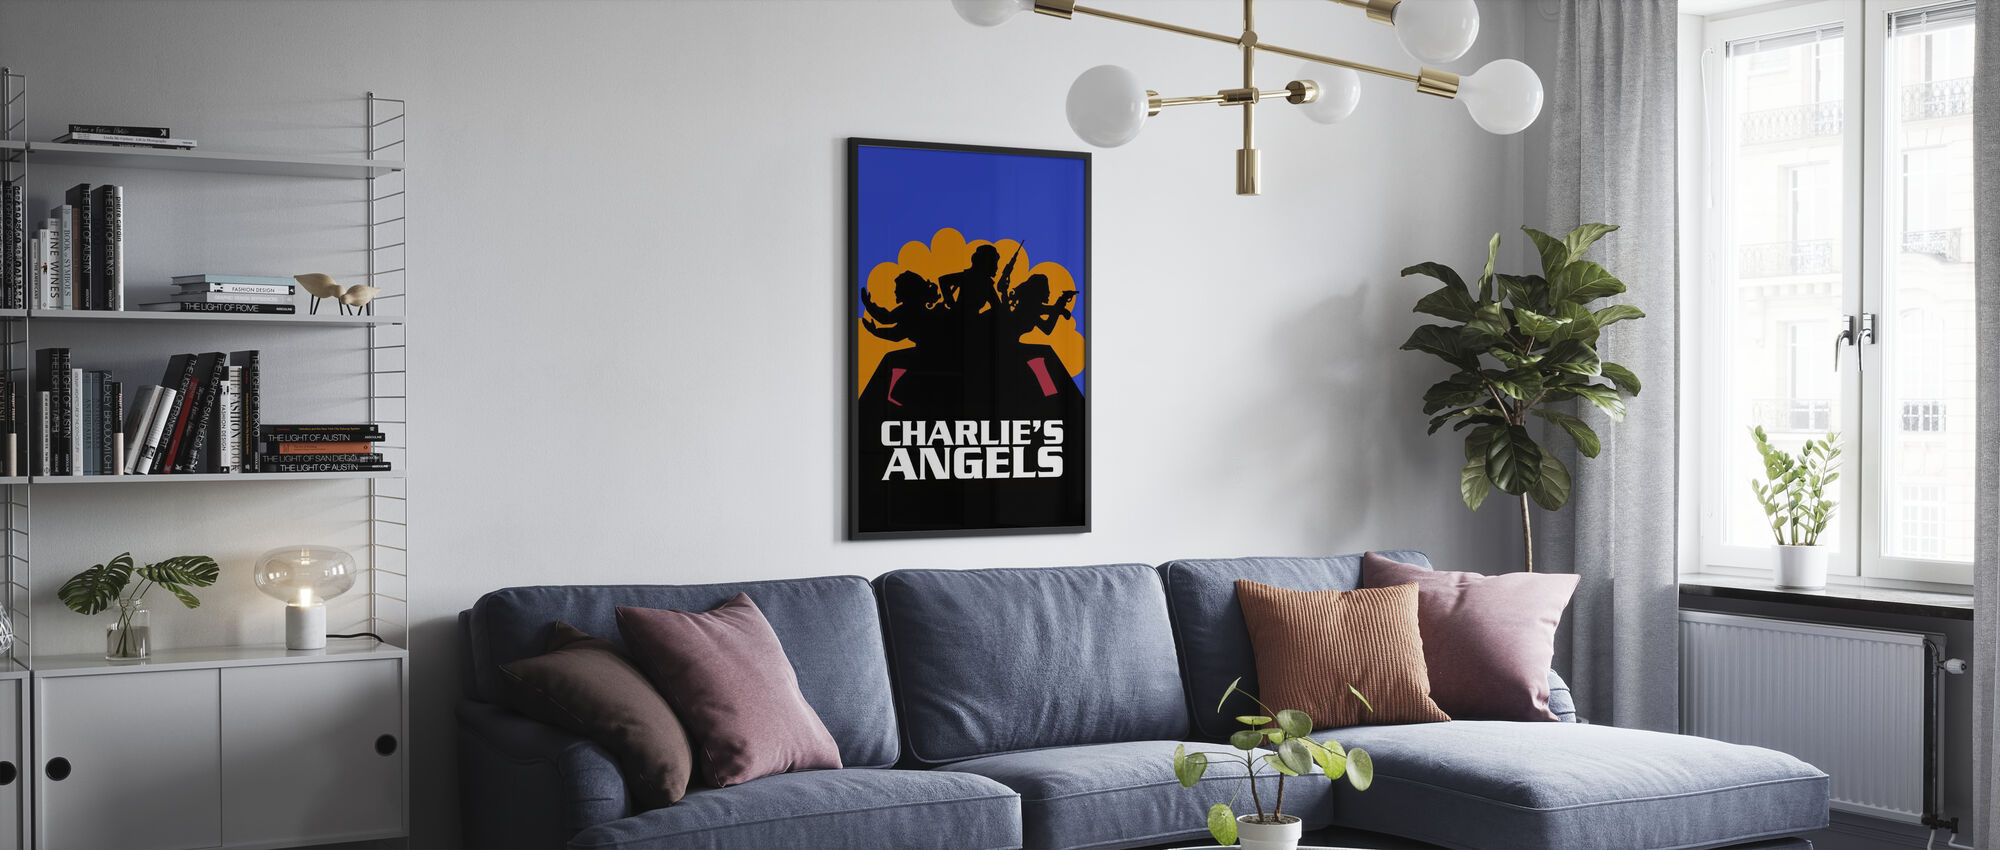 Charlies Angels - Poster - Living Room